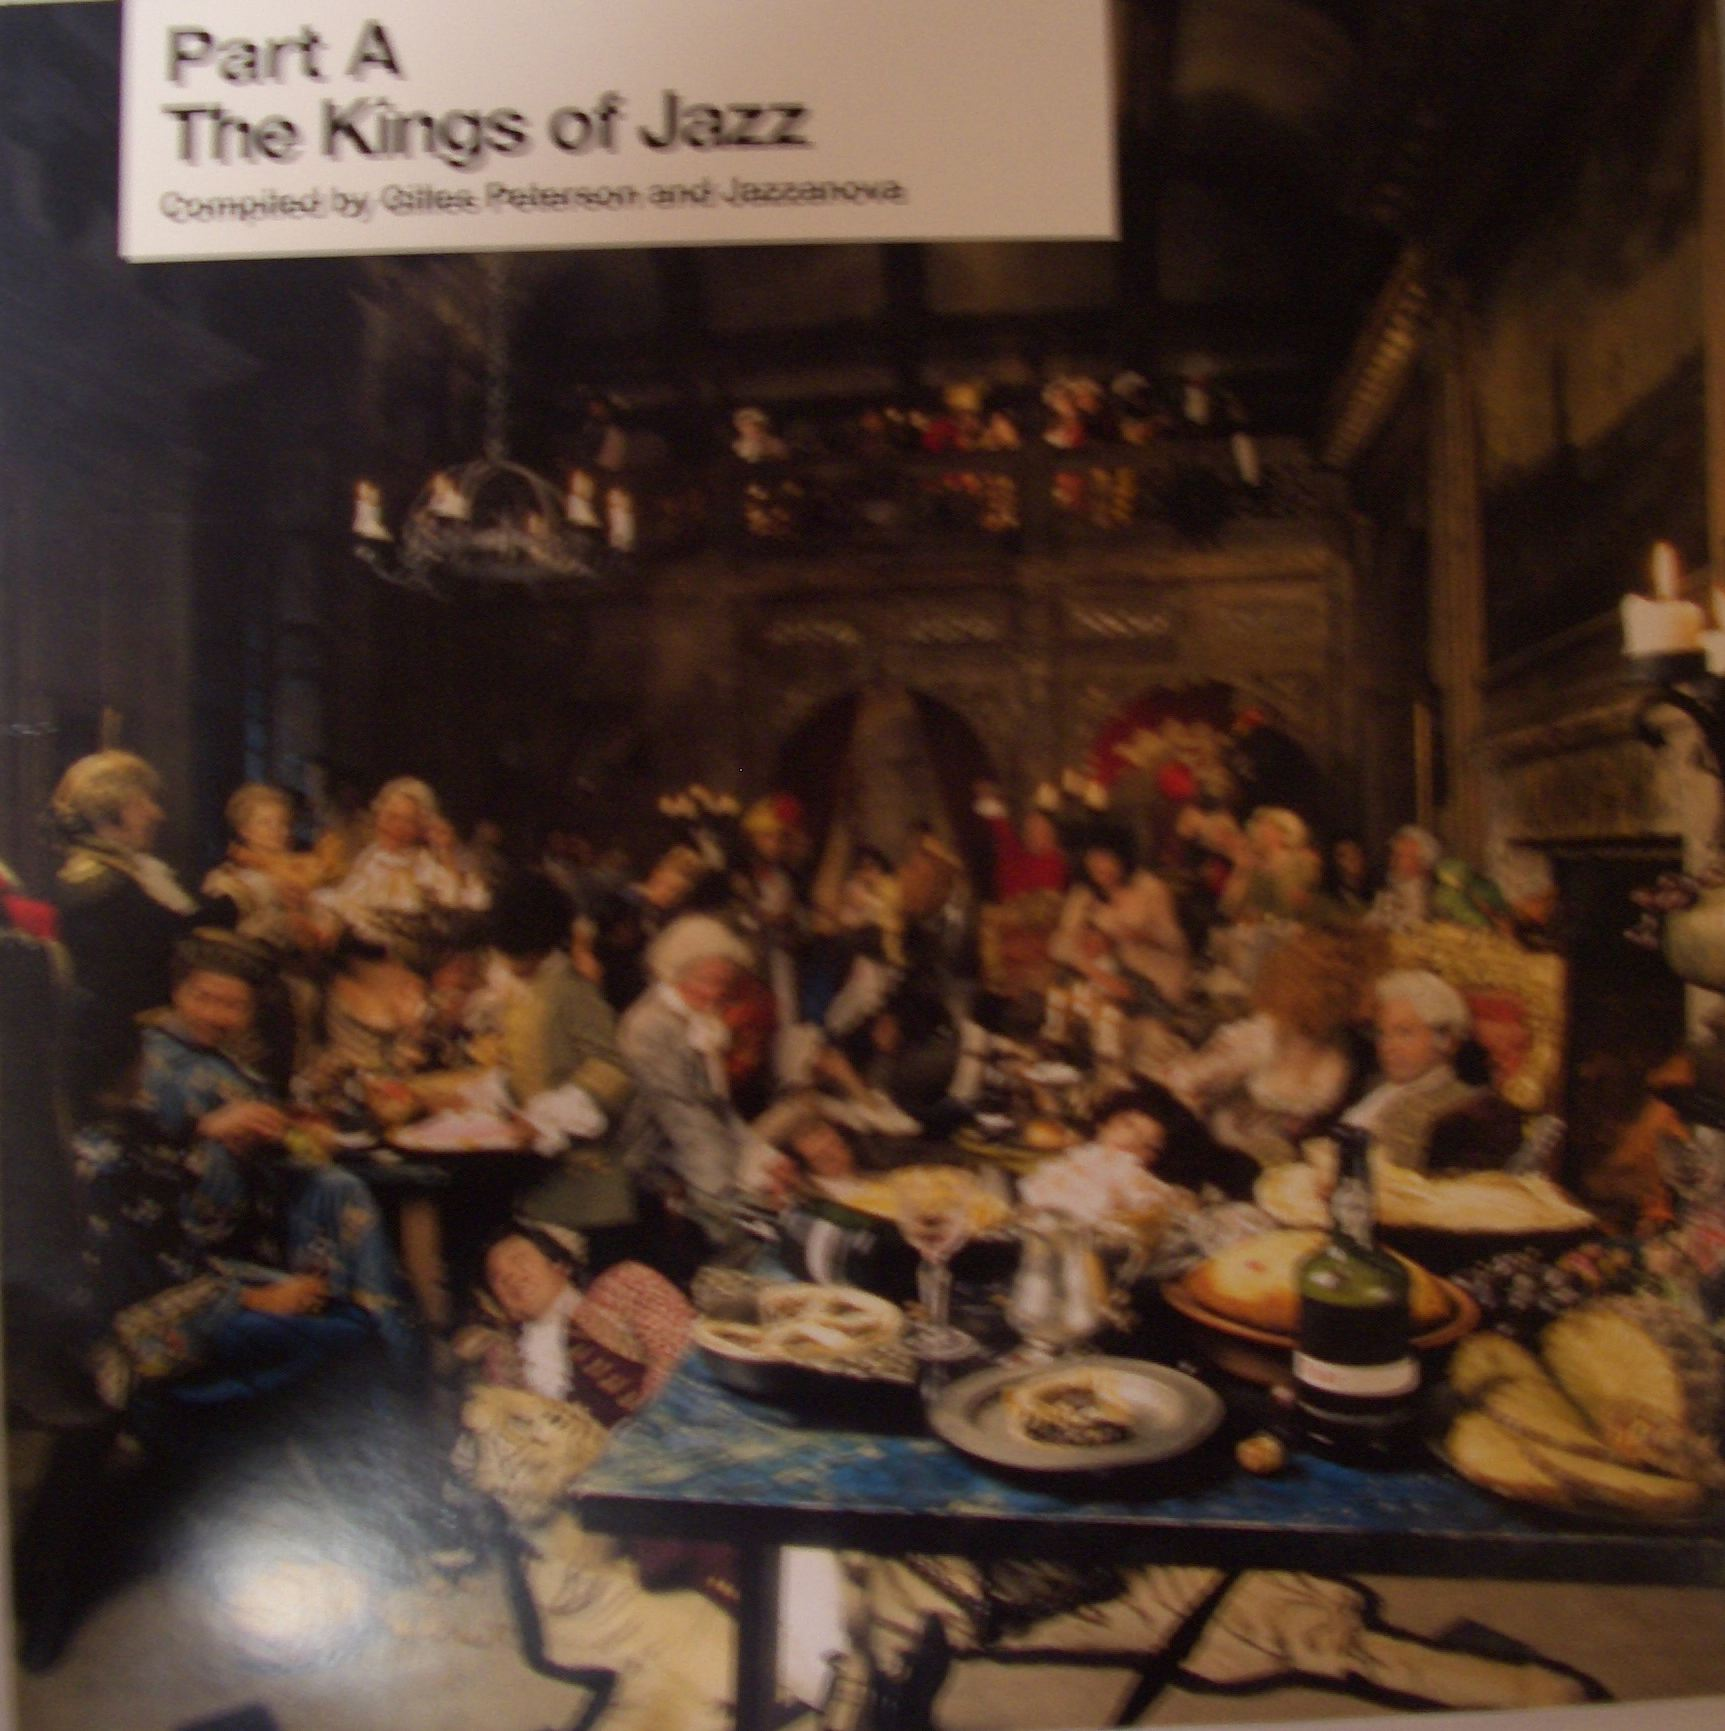 VARIOUS / THE KINGS OF JAZZ part A